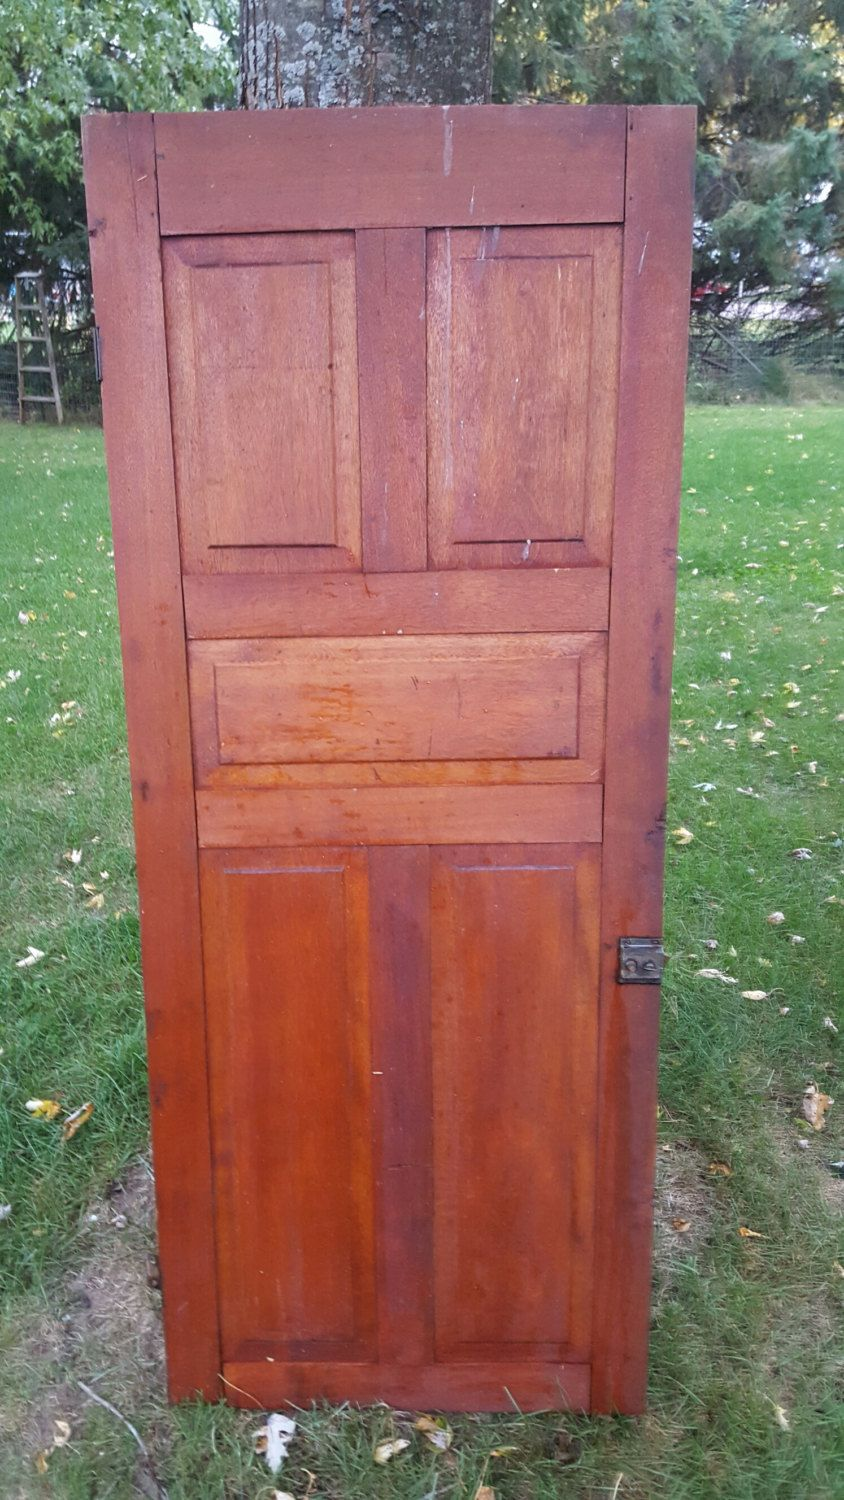 Old Wood Door, Antique, Cupboard Door, Architectural Salvaged, 5 panel,  Arts, Crafts, Panel Door, Solid Wood, Pantry, DIY Project D4 by  ANTFOUNDANTIQUES on ... - Old Wood Door, Antique, Cupboard Door, Architectural Salvage, 5